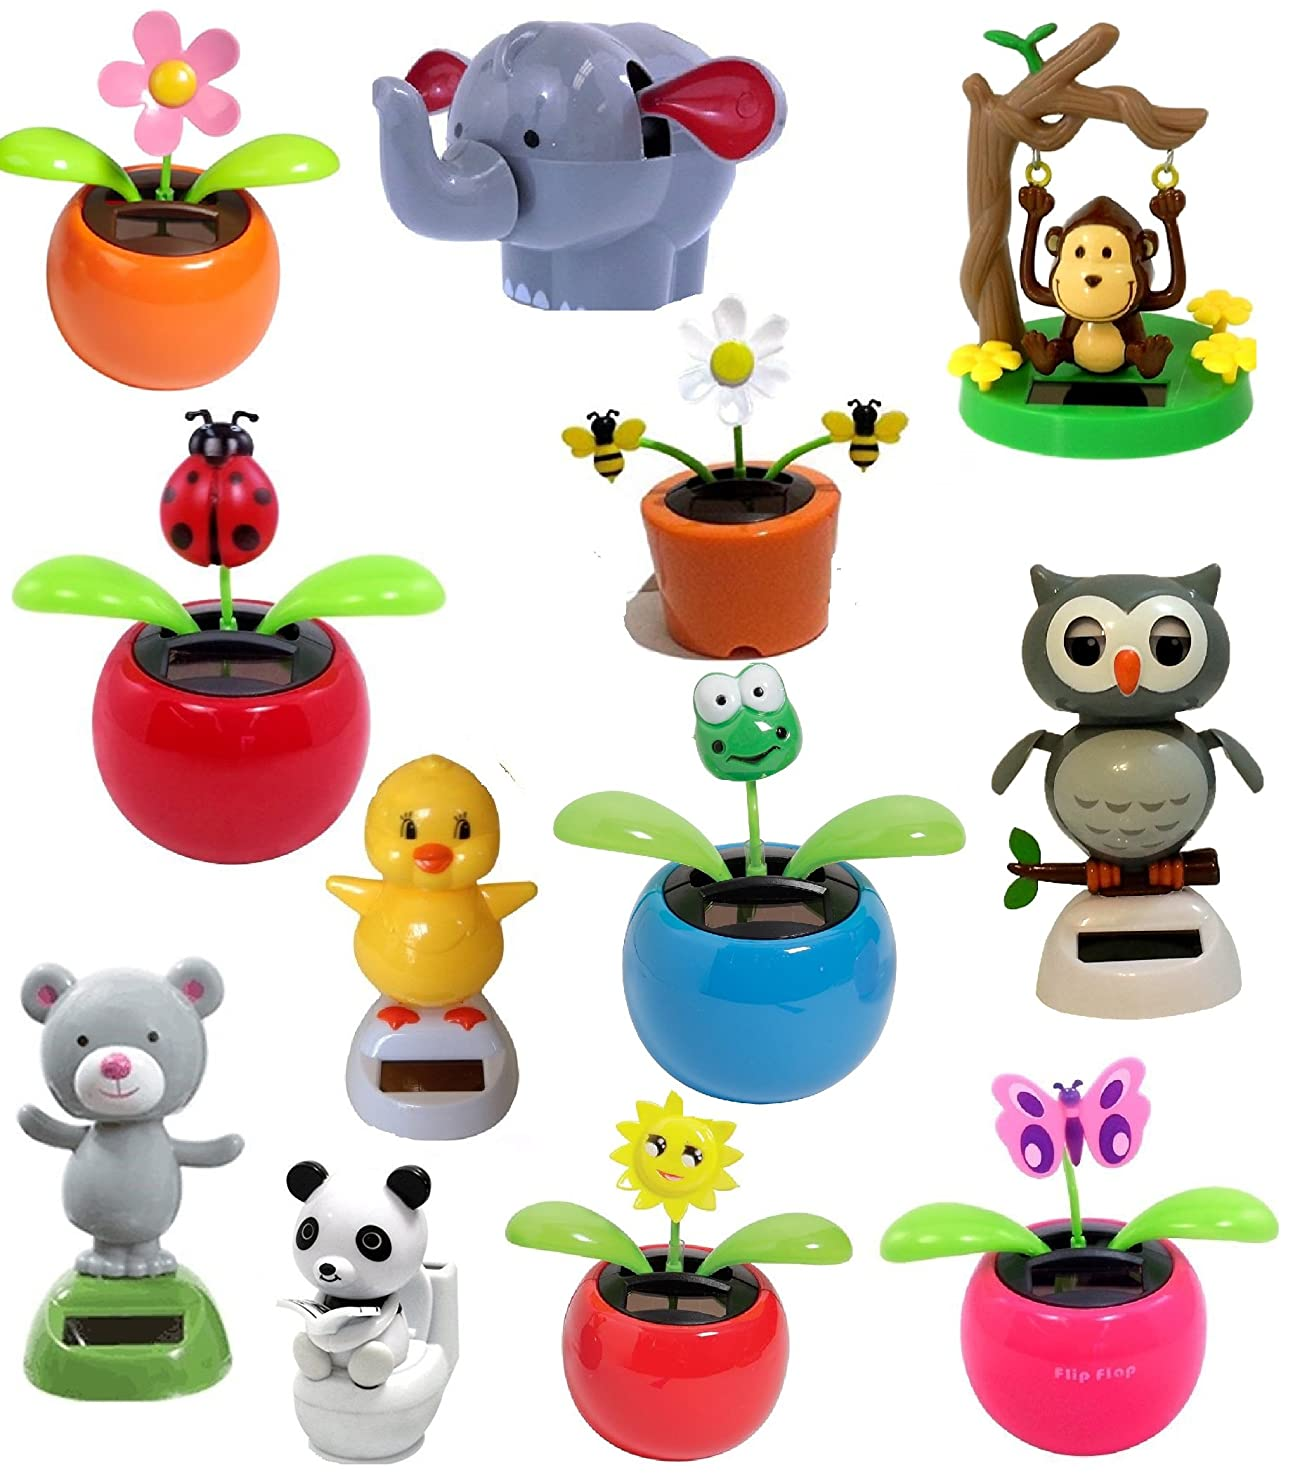 Set of 4 Assorted Dancing Solar Toys ~ Solar Toys are Daisy Flower, Lady Bug, Dancing Bear, Panda on Toilet and more! Great Holiday Christmas Gift Car Dashboard Office Desk Home Decor udeeqnqqzka14